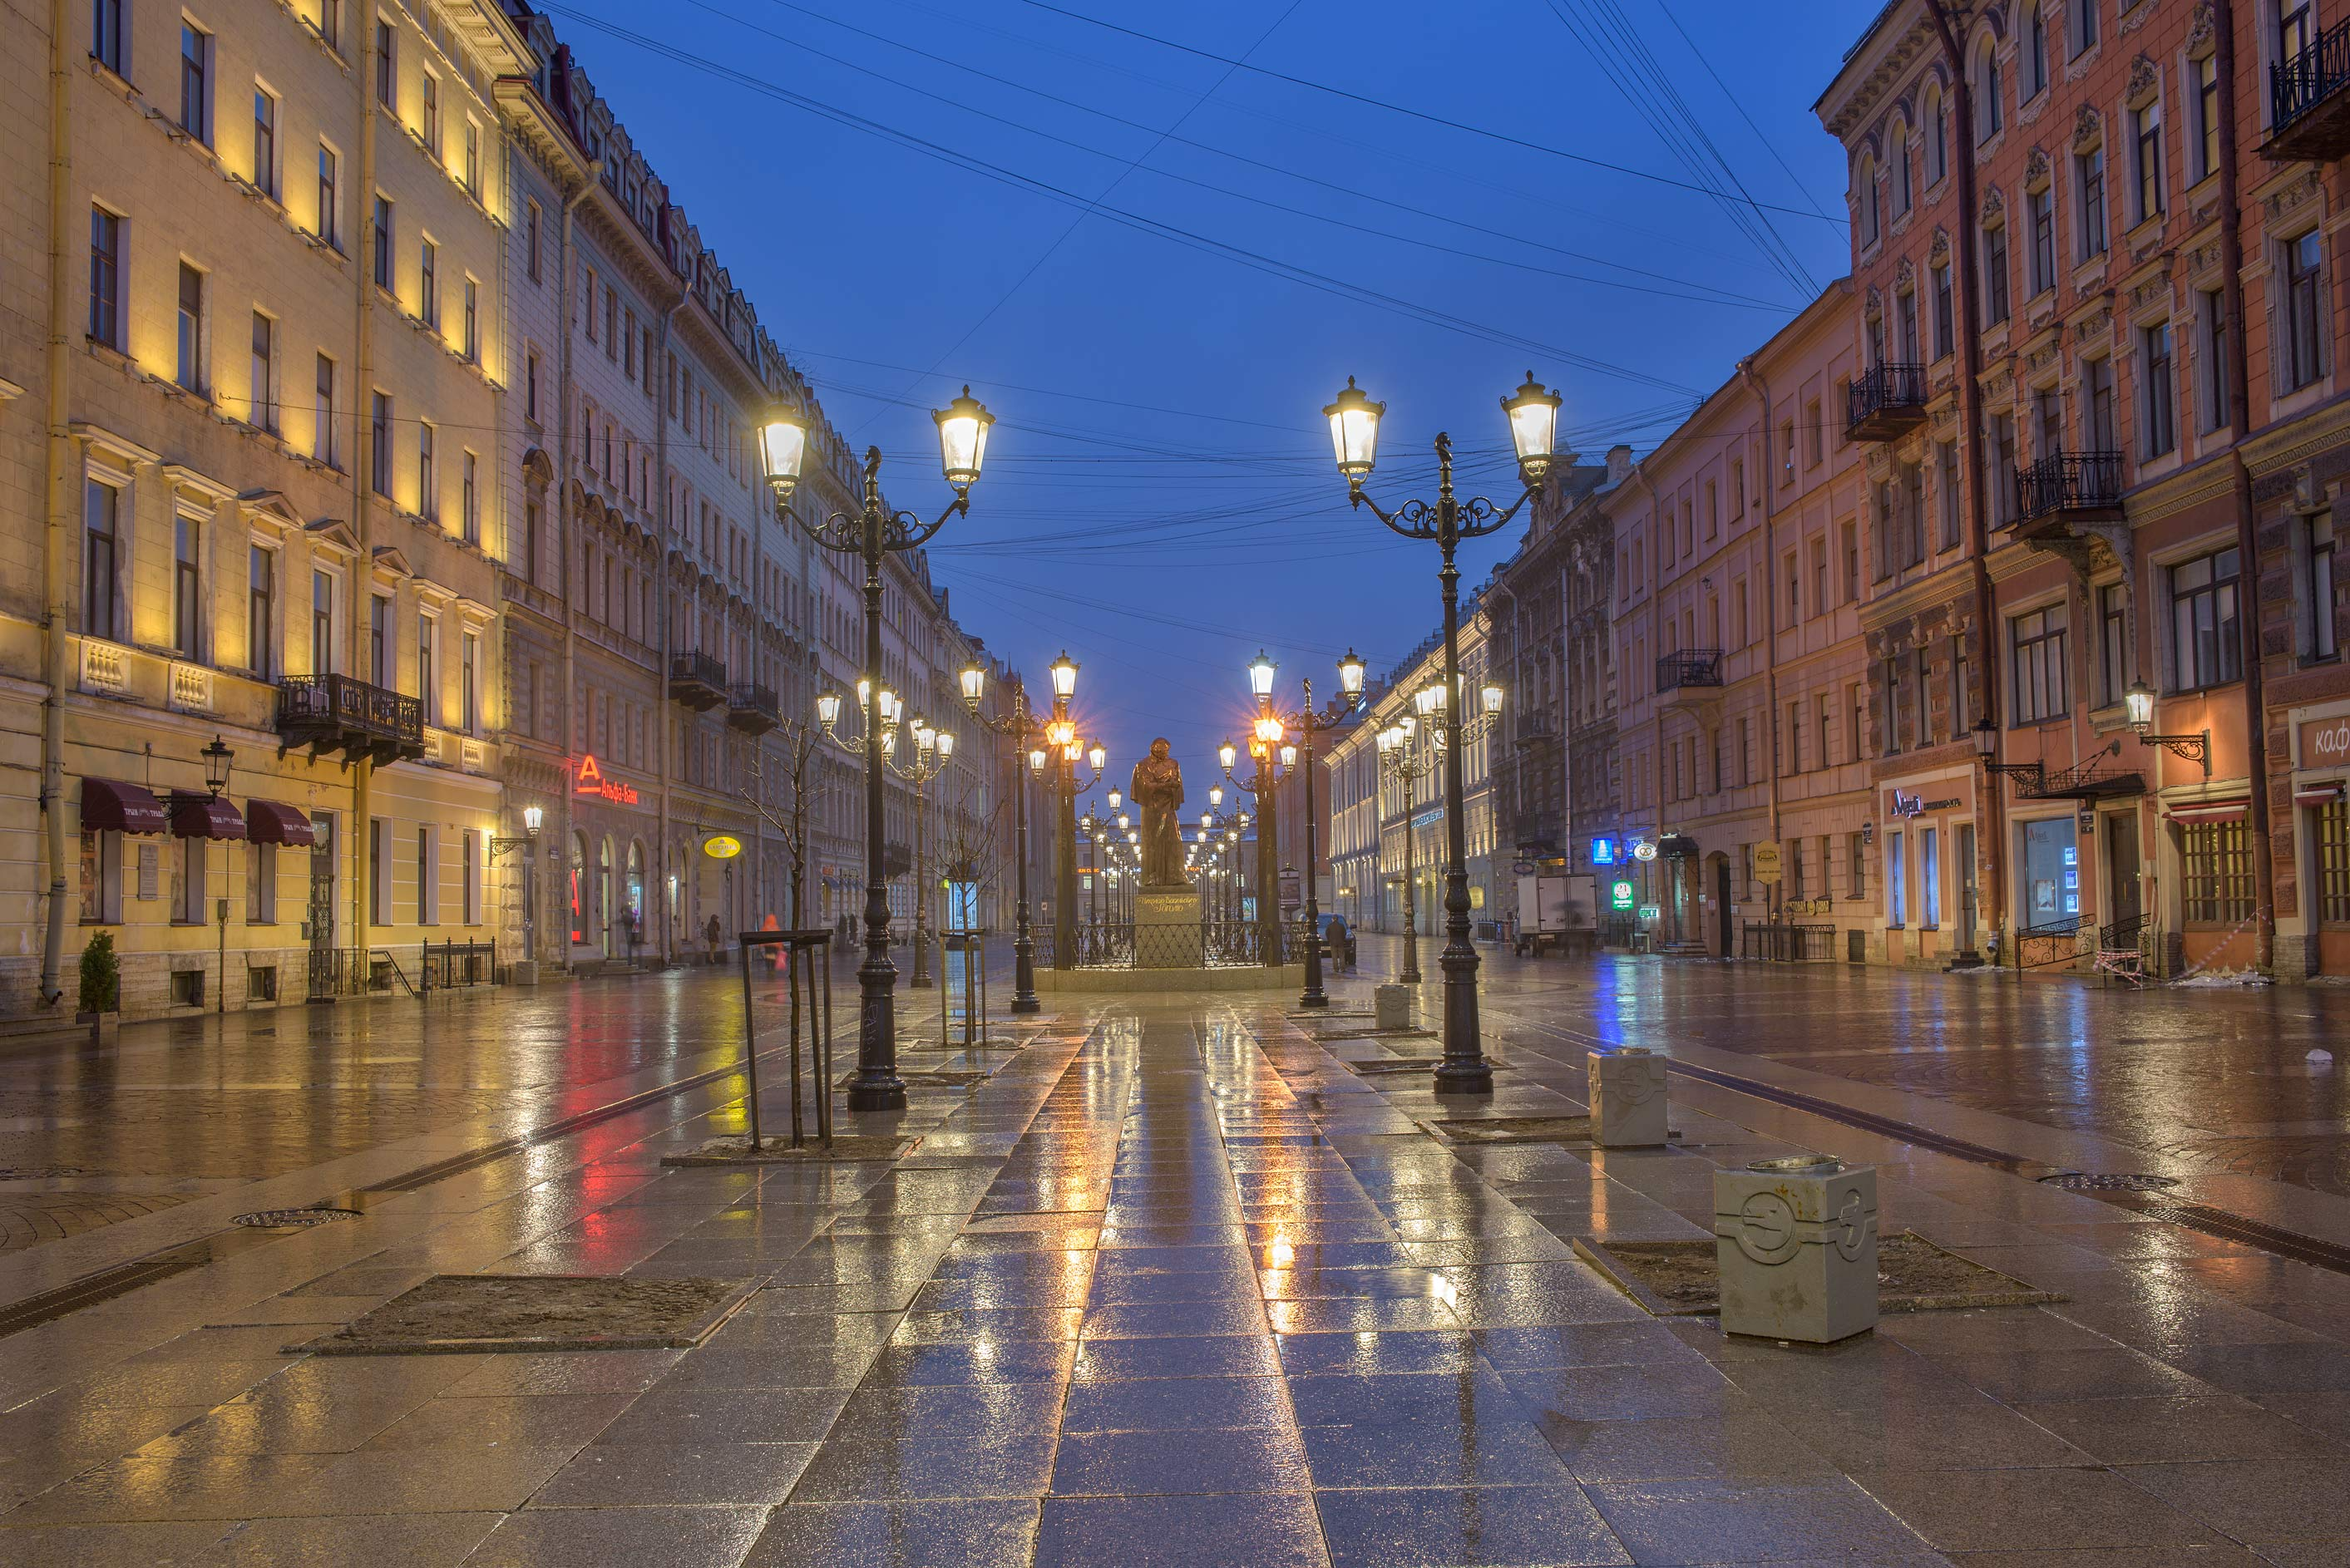 Lights of Malaya Konyushennaya St. from Nevsky Prospect. St.Petersburg, Russia